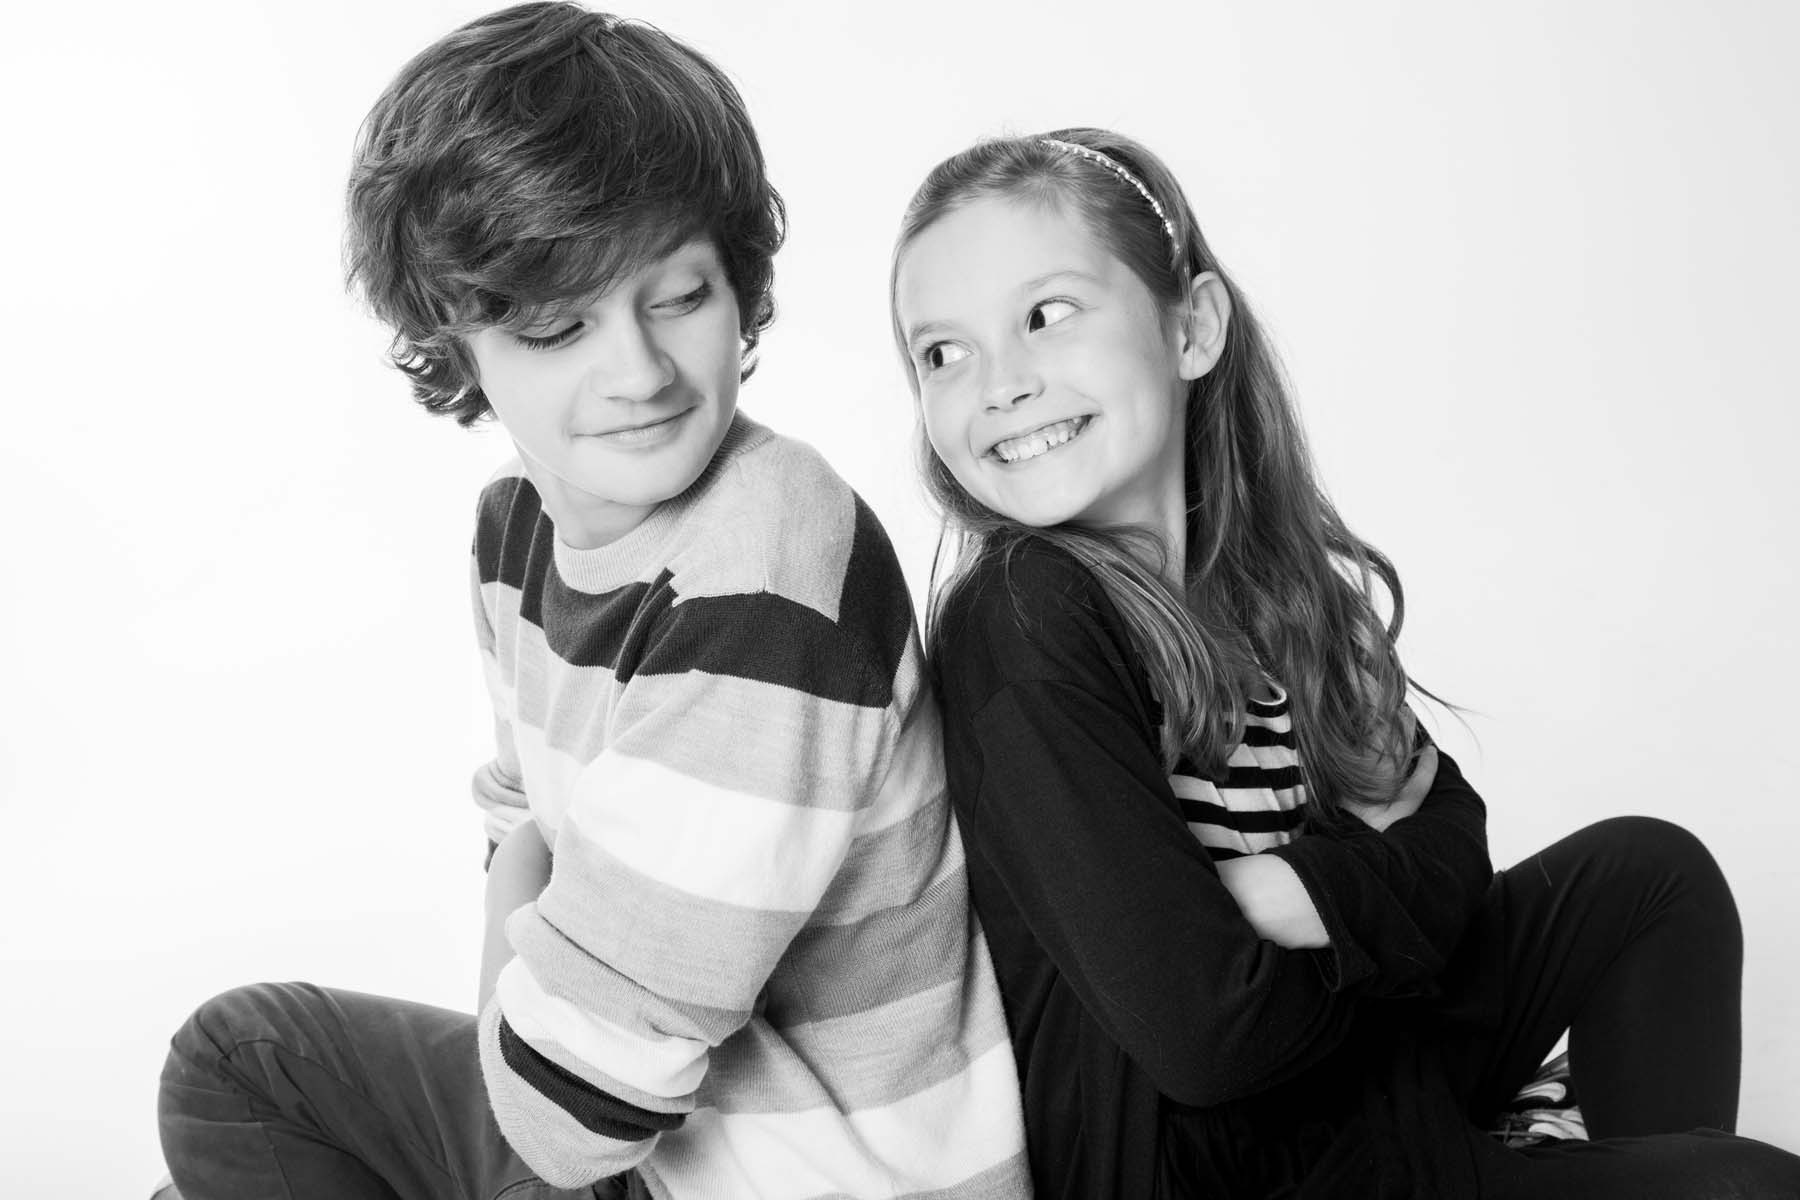 Child Photographer in Sussex & Surrey, East Grinstead & Crawley (26)